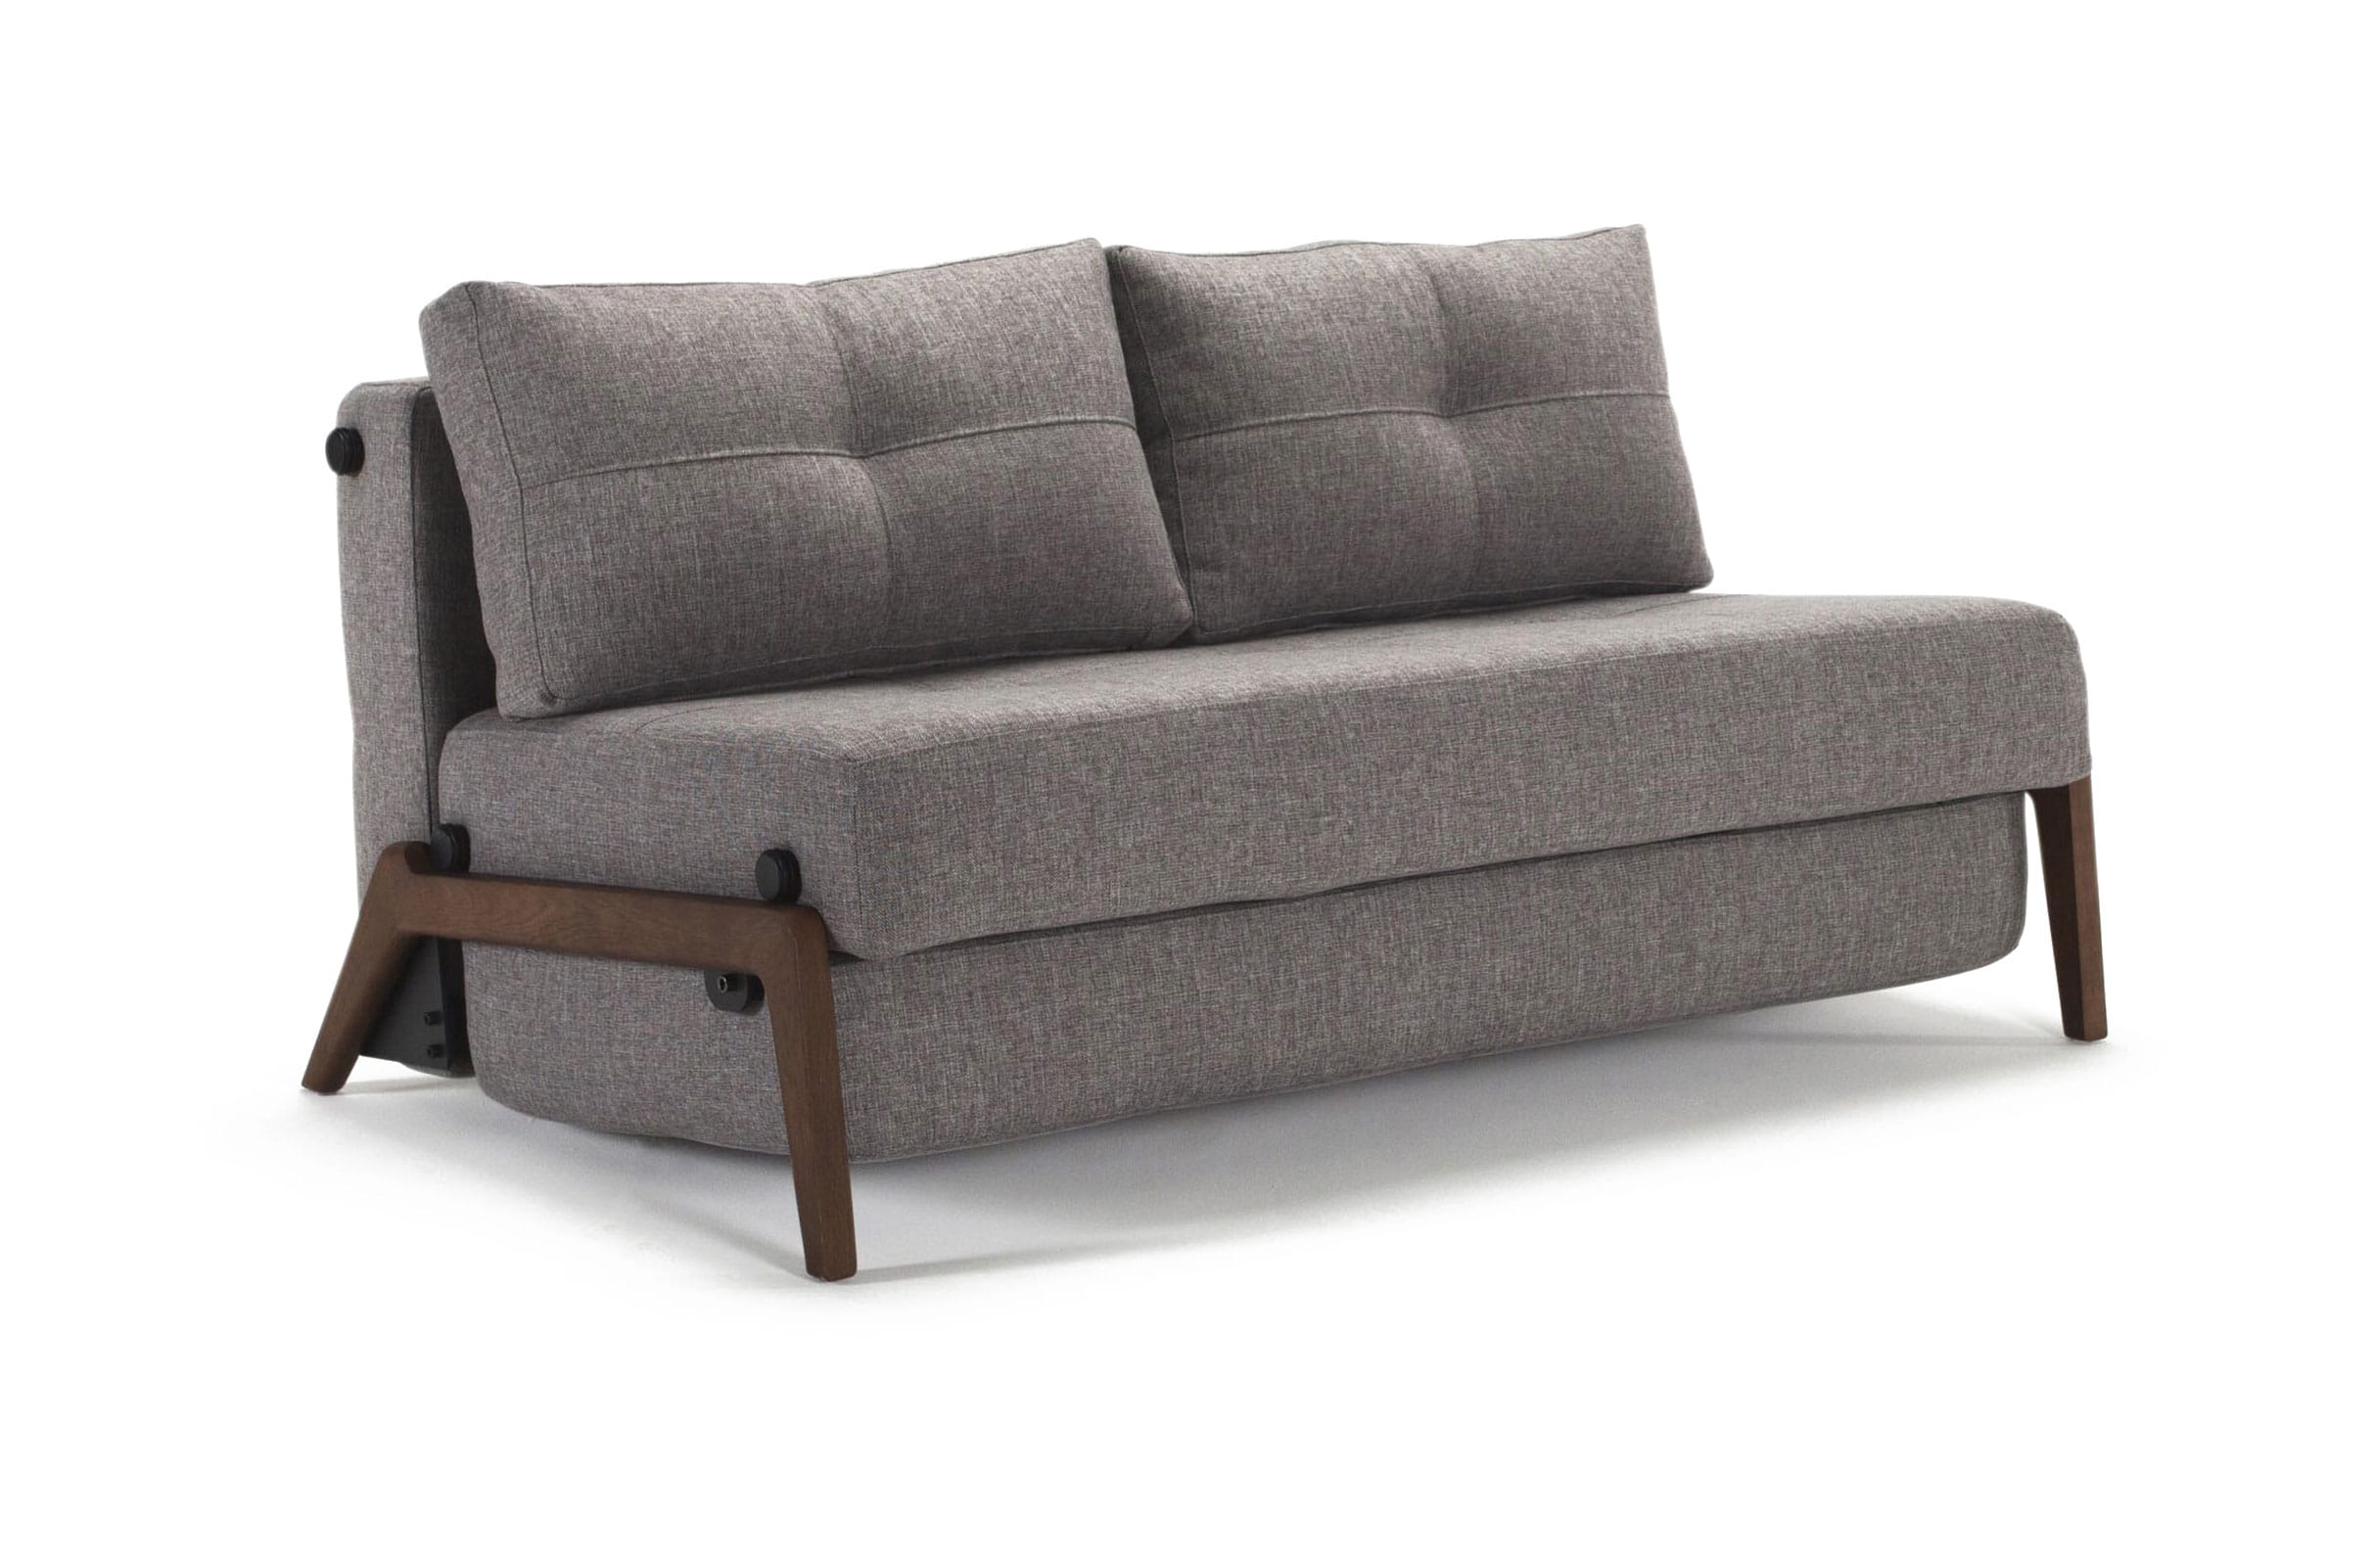 Cubed deluxe sofa bed queen size mixed dance gray by for Sofa bed queen size